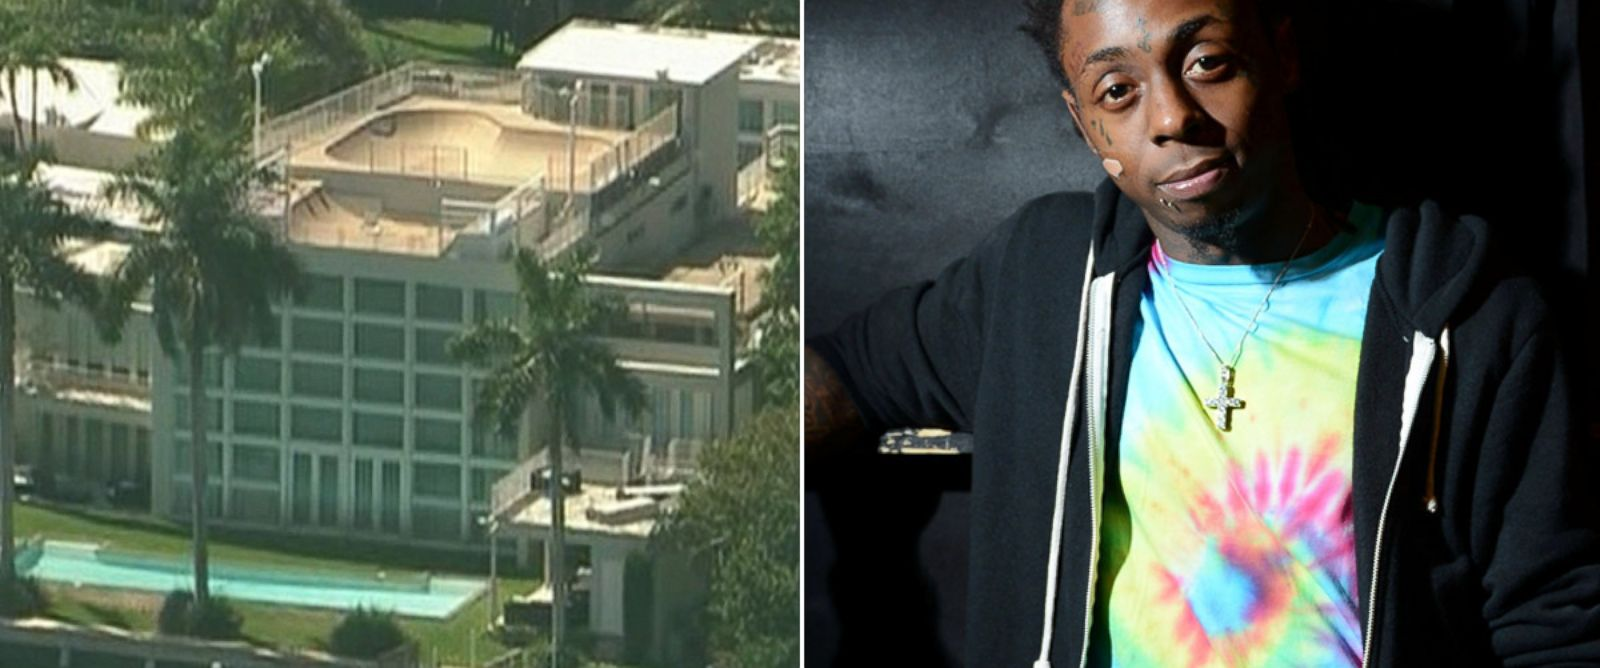 PHOTO: From left, Lil Waynes mansion in Miami Beach, Fla., and Lil Wayne in New Orleans